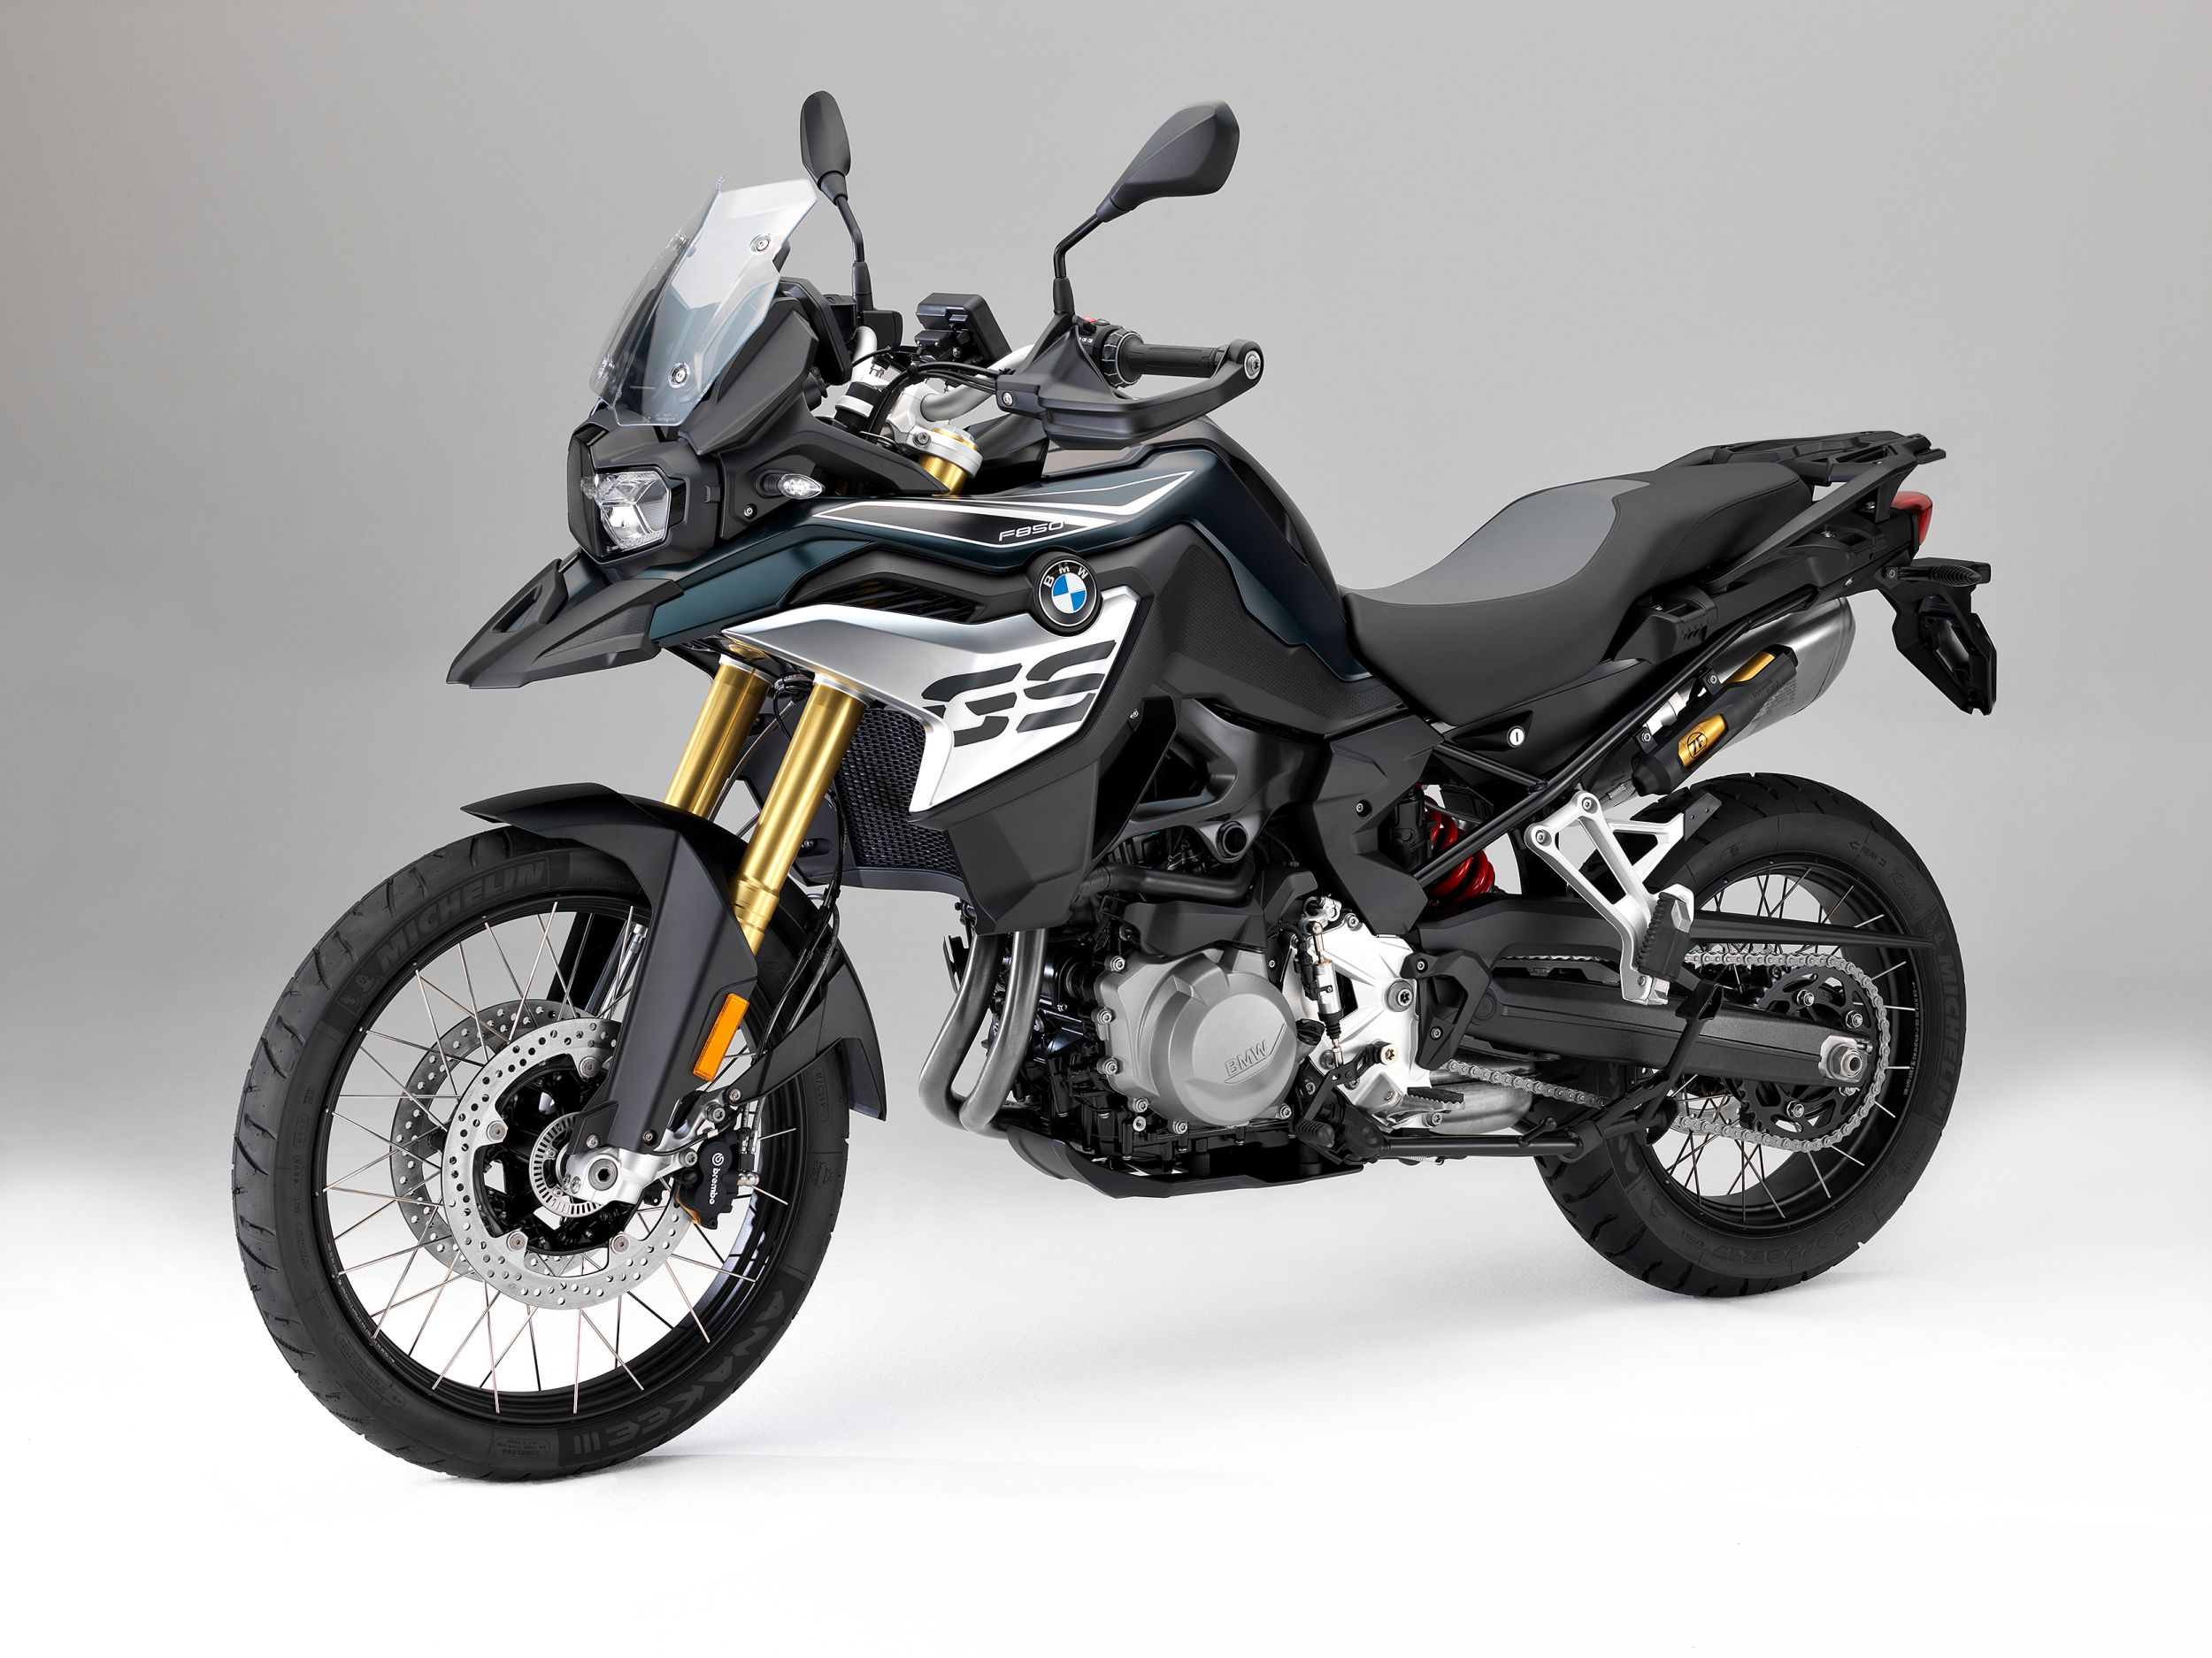 gebrauchte bmw f 850 gs motorr der kaufen. Black Bedroom Furniture Sets. Home Design Ideas